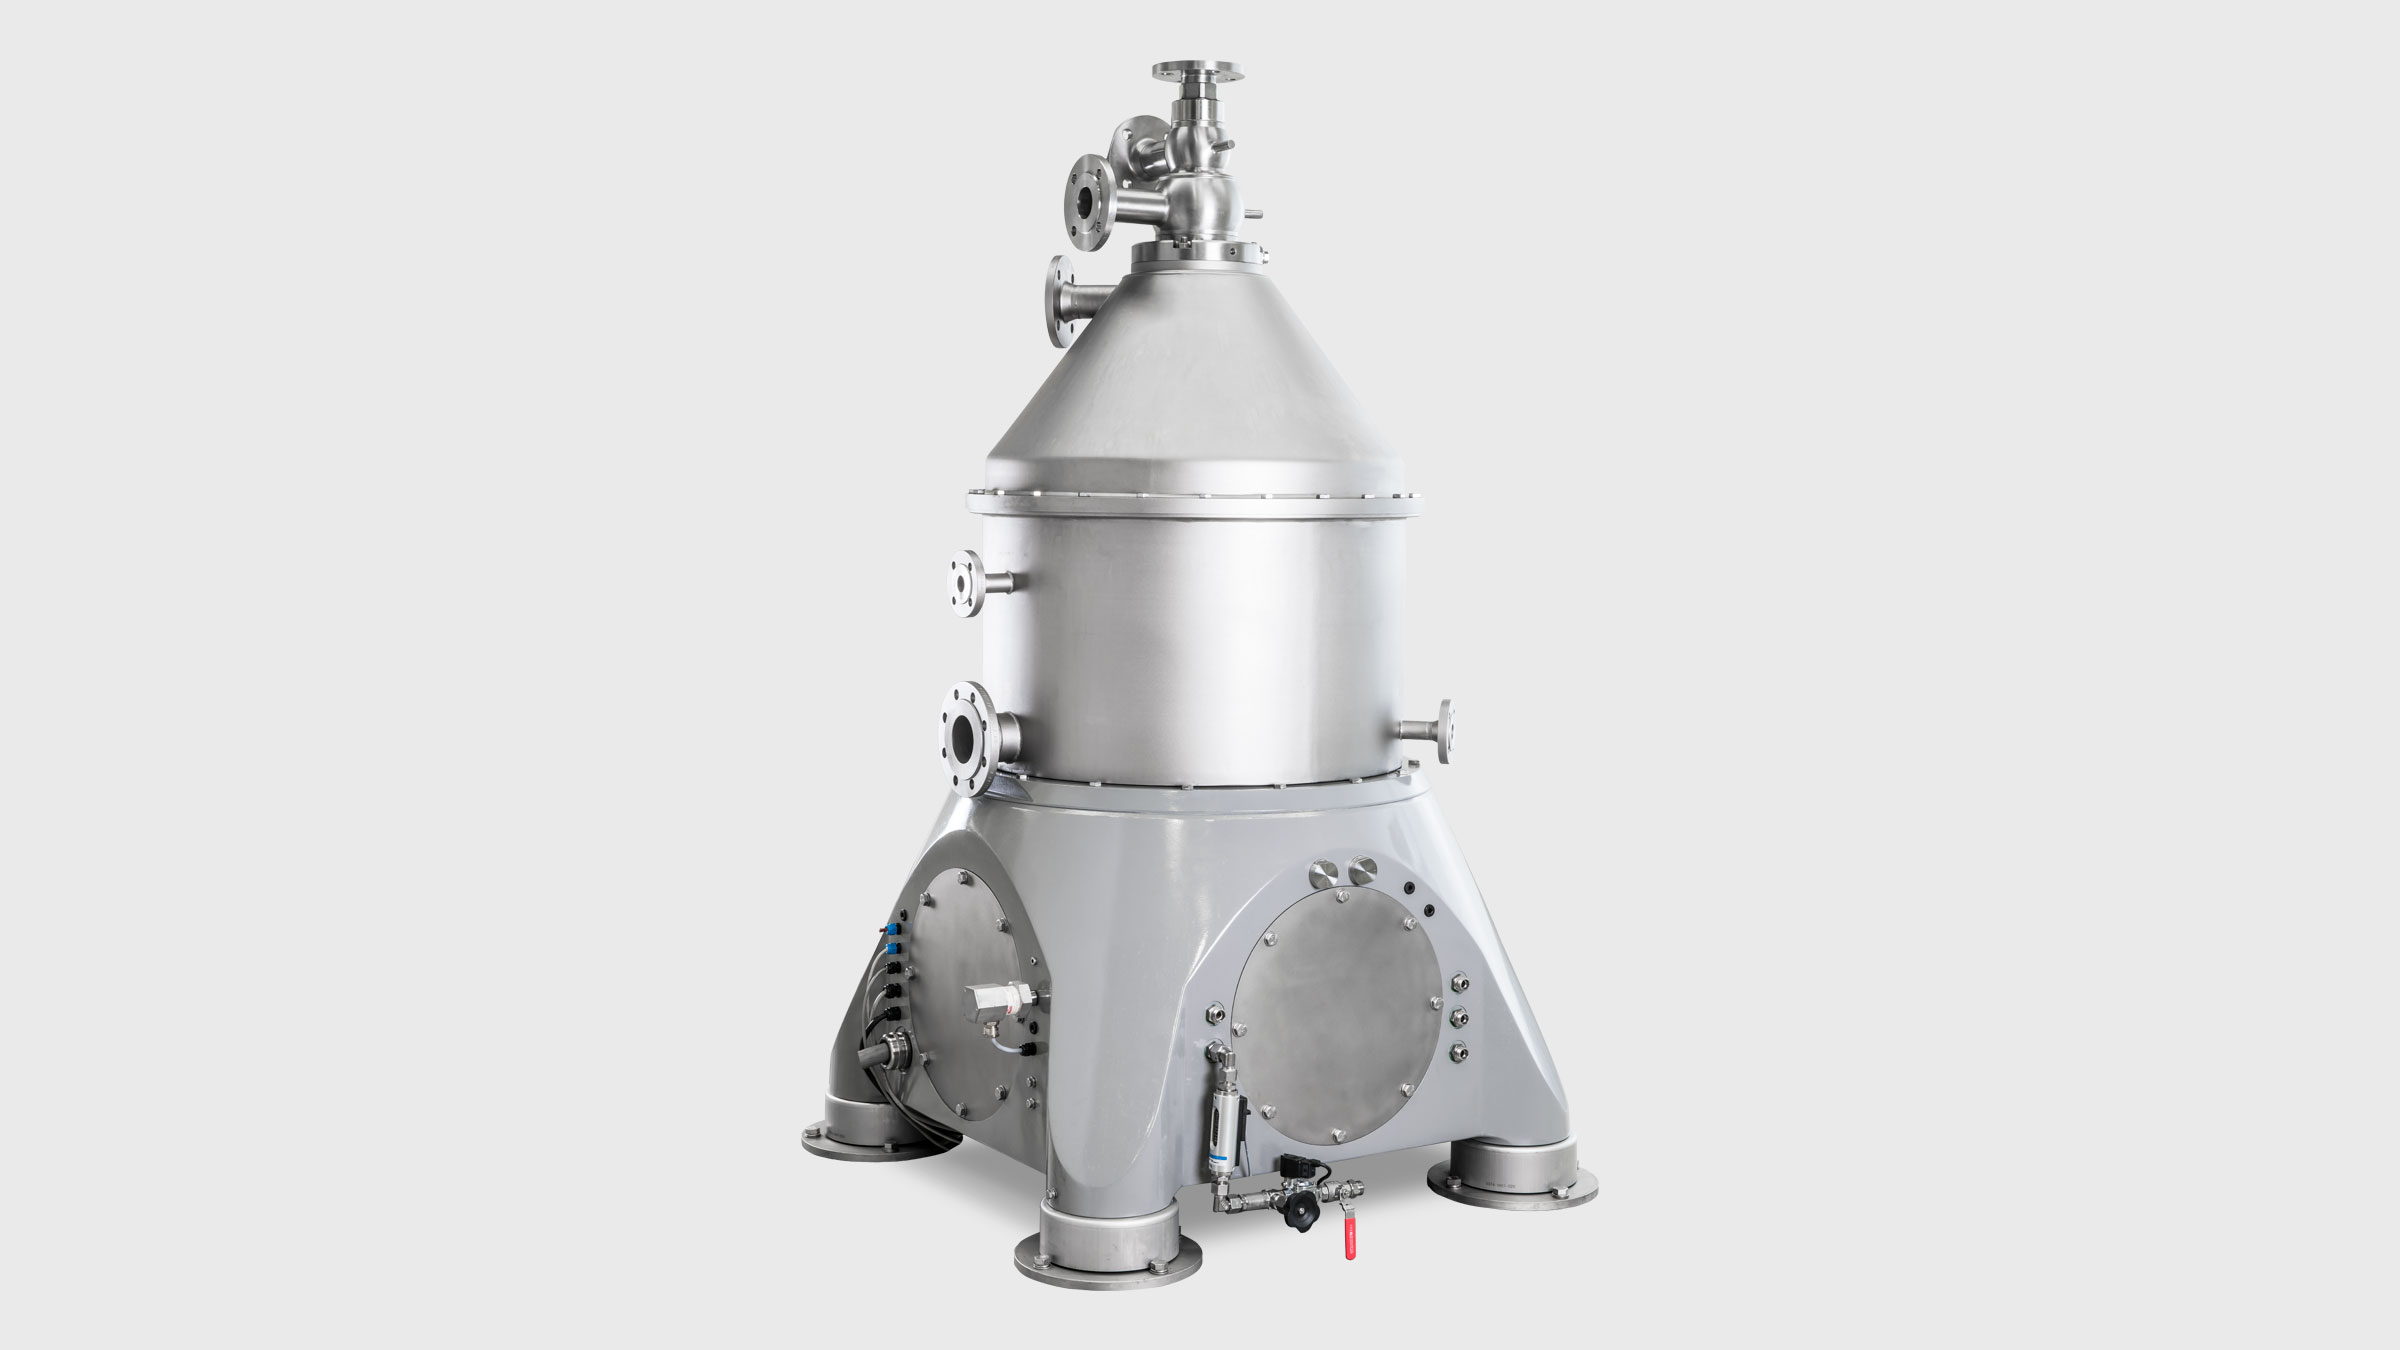 Presenting the GEA TTI 150 at ACHEMA 2018 – an explosion-proof separator for chemical applications